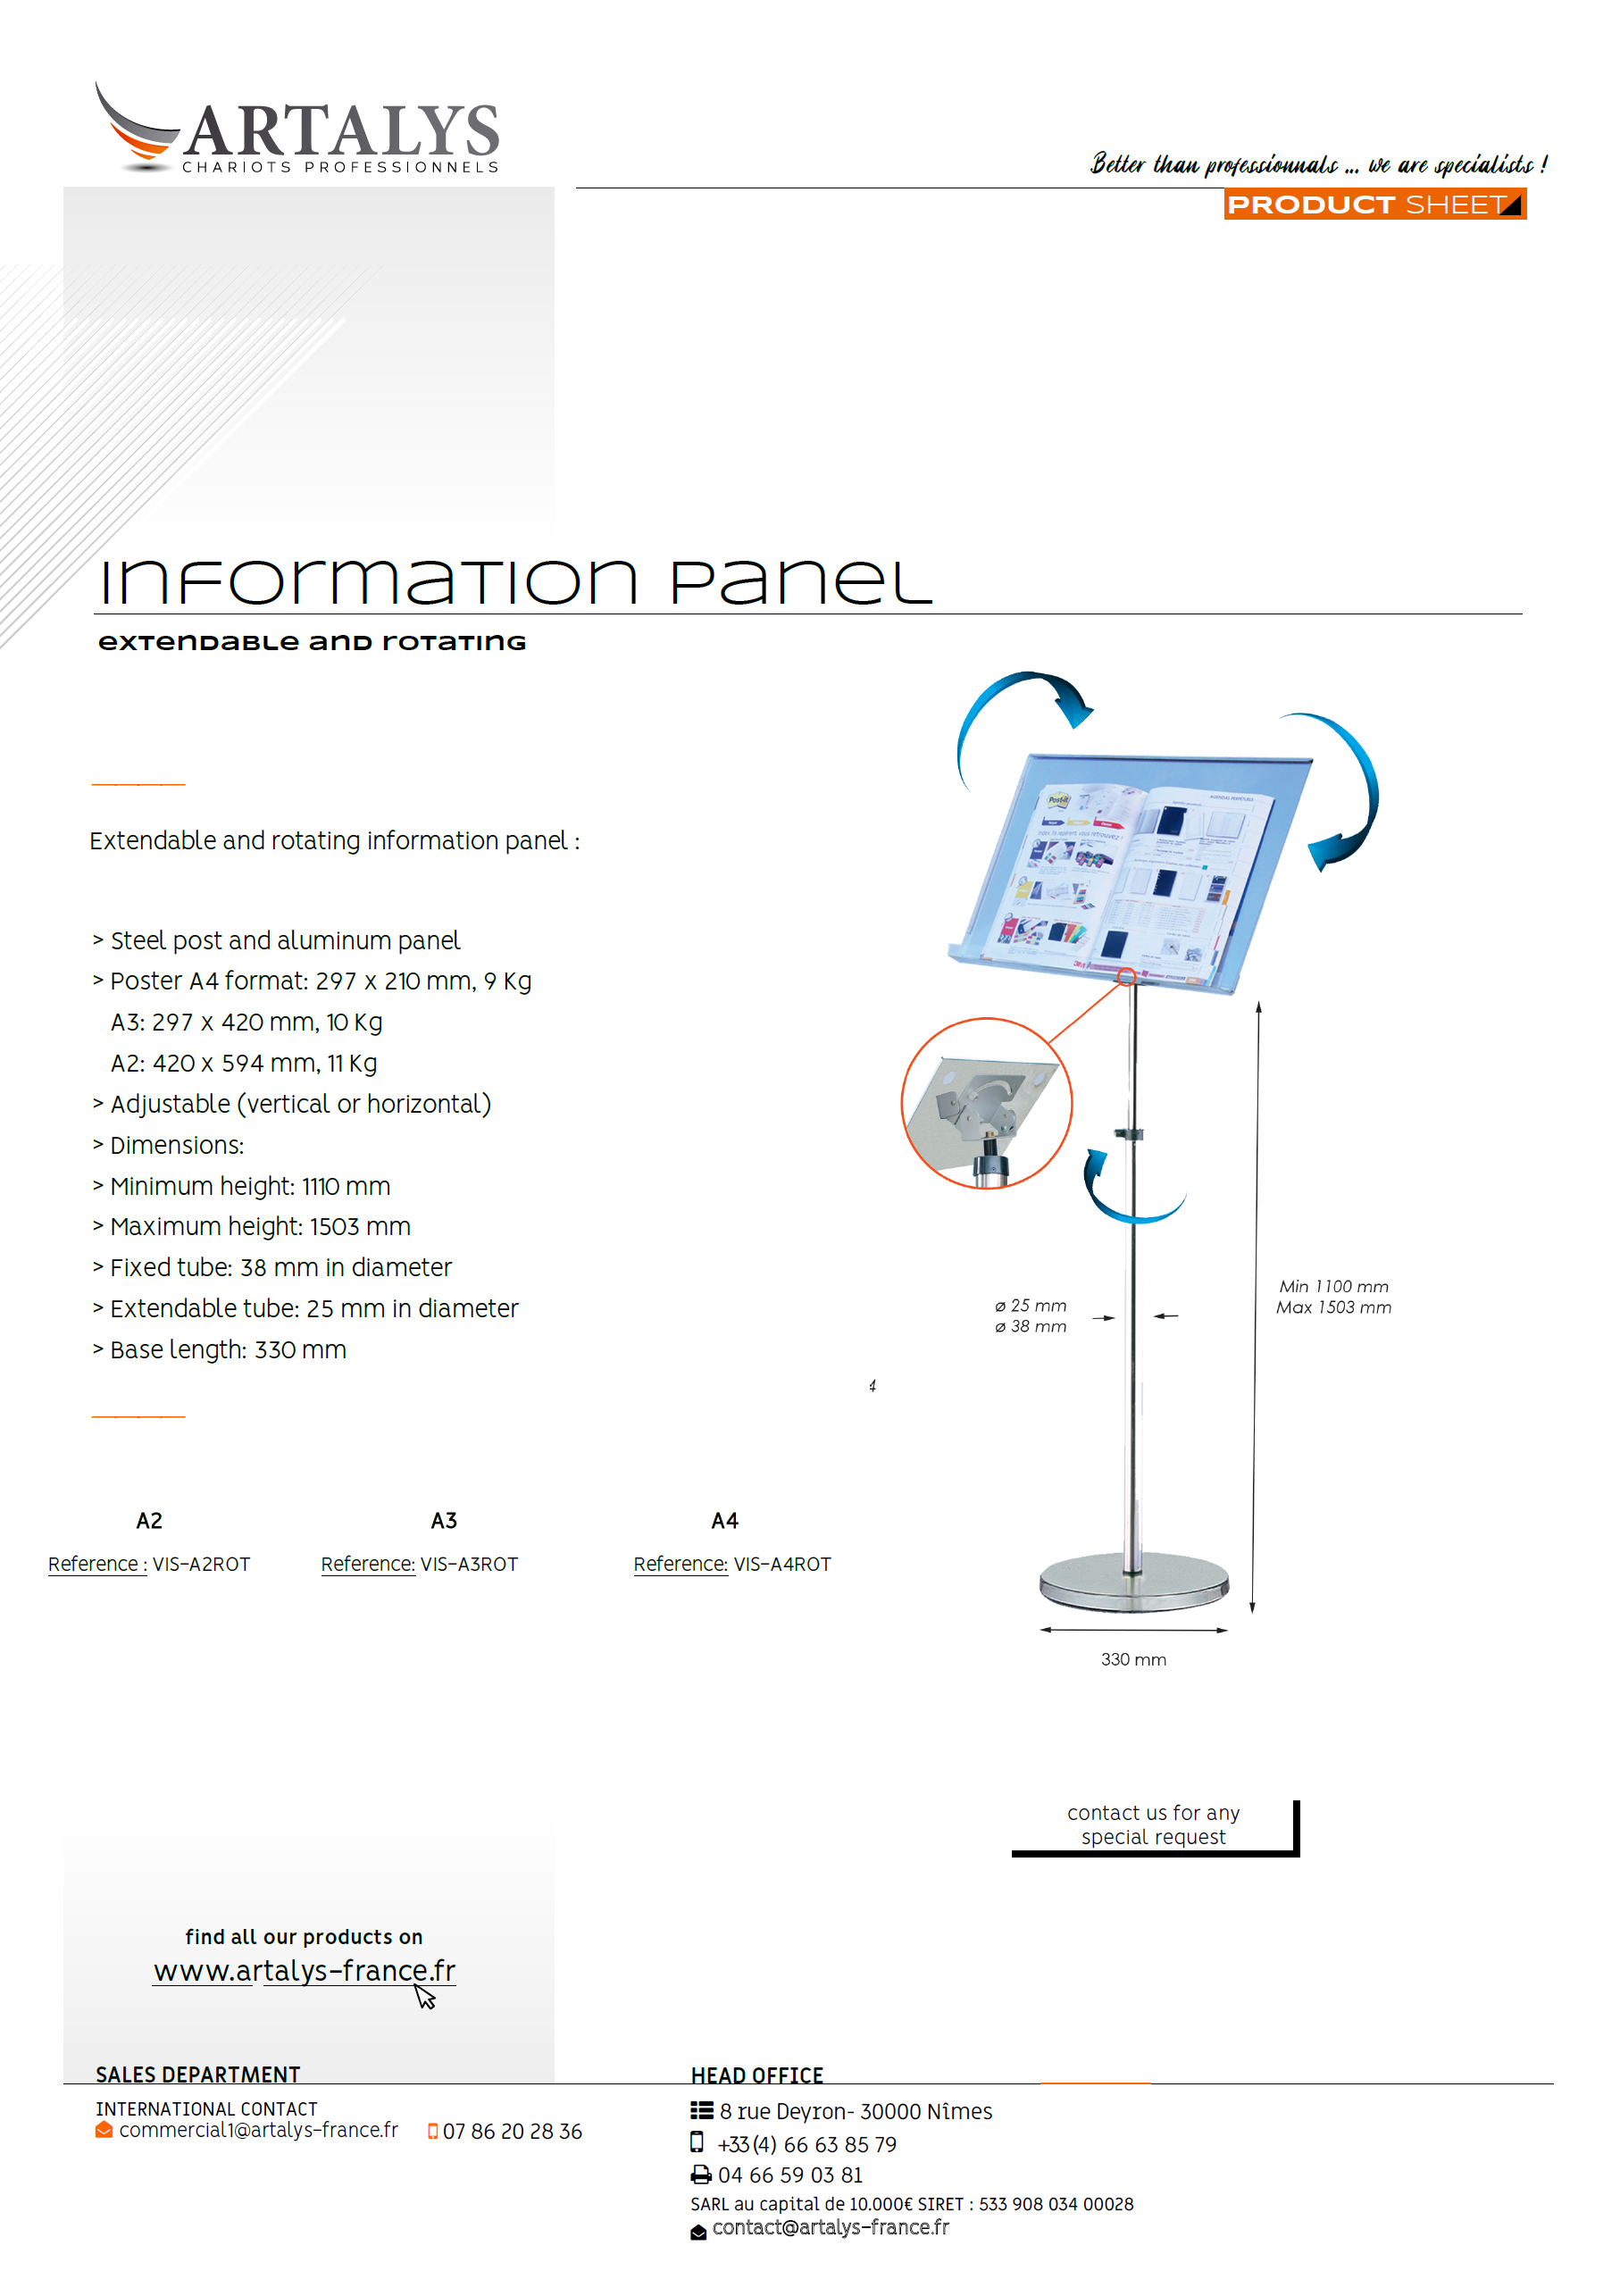 Product sheet of our information panel extendable and rotating